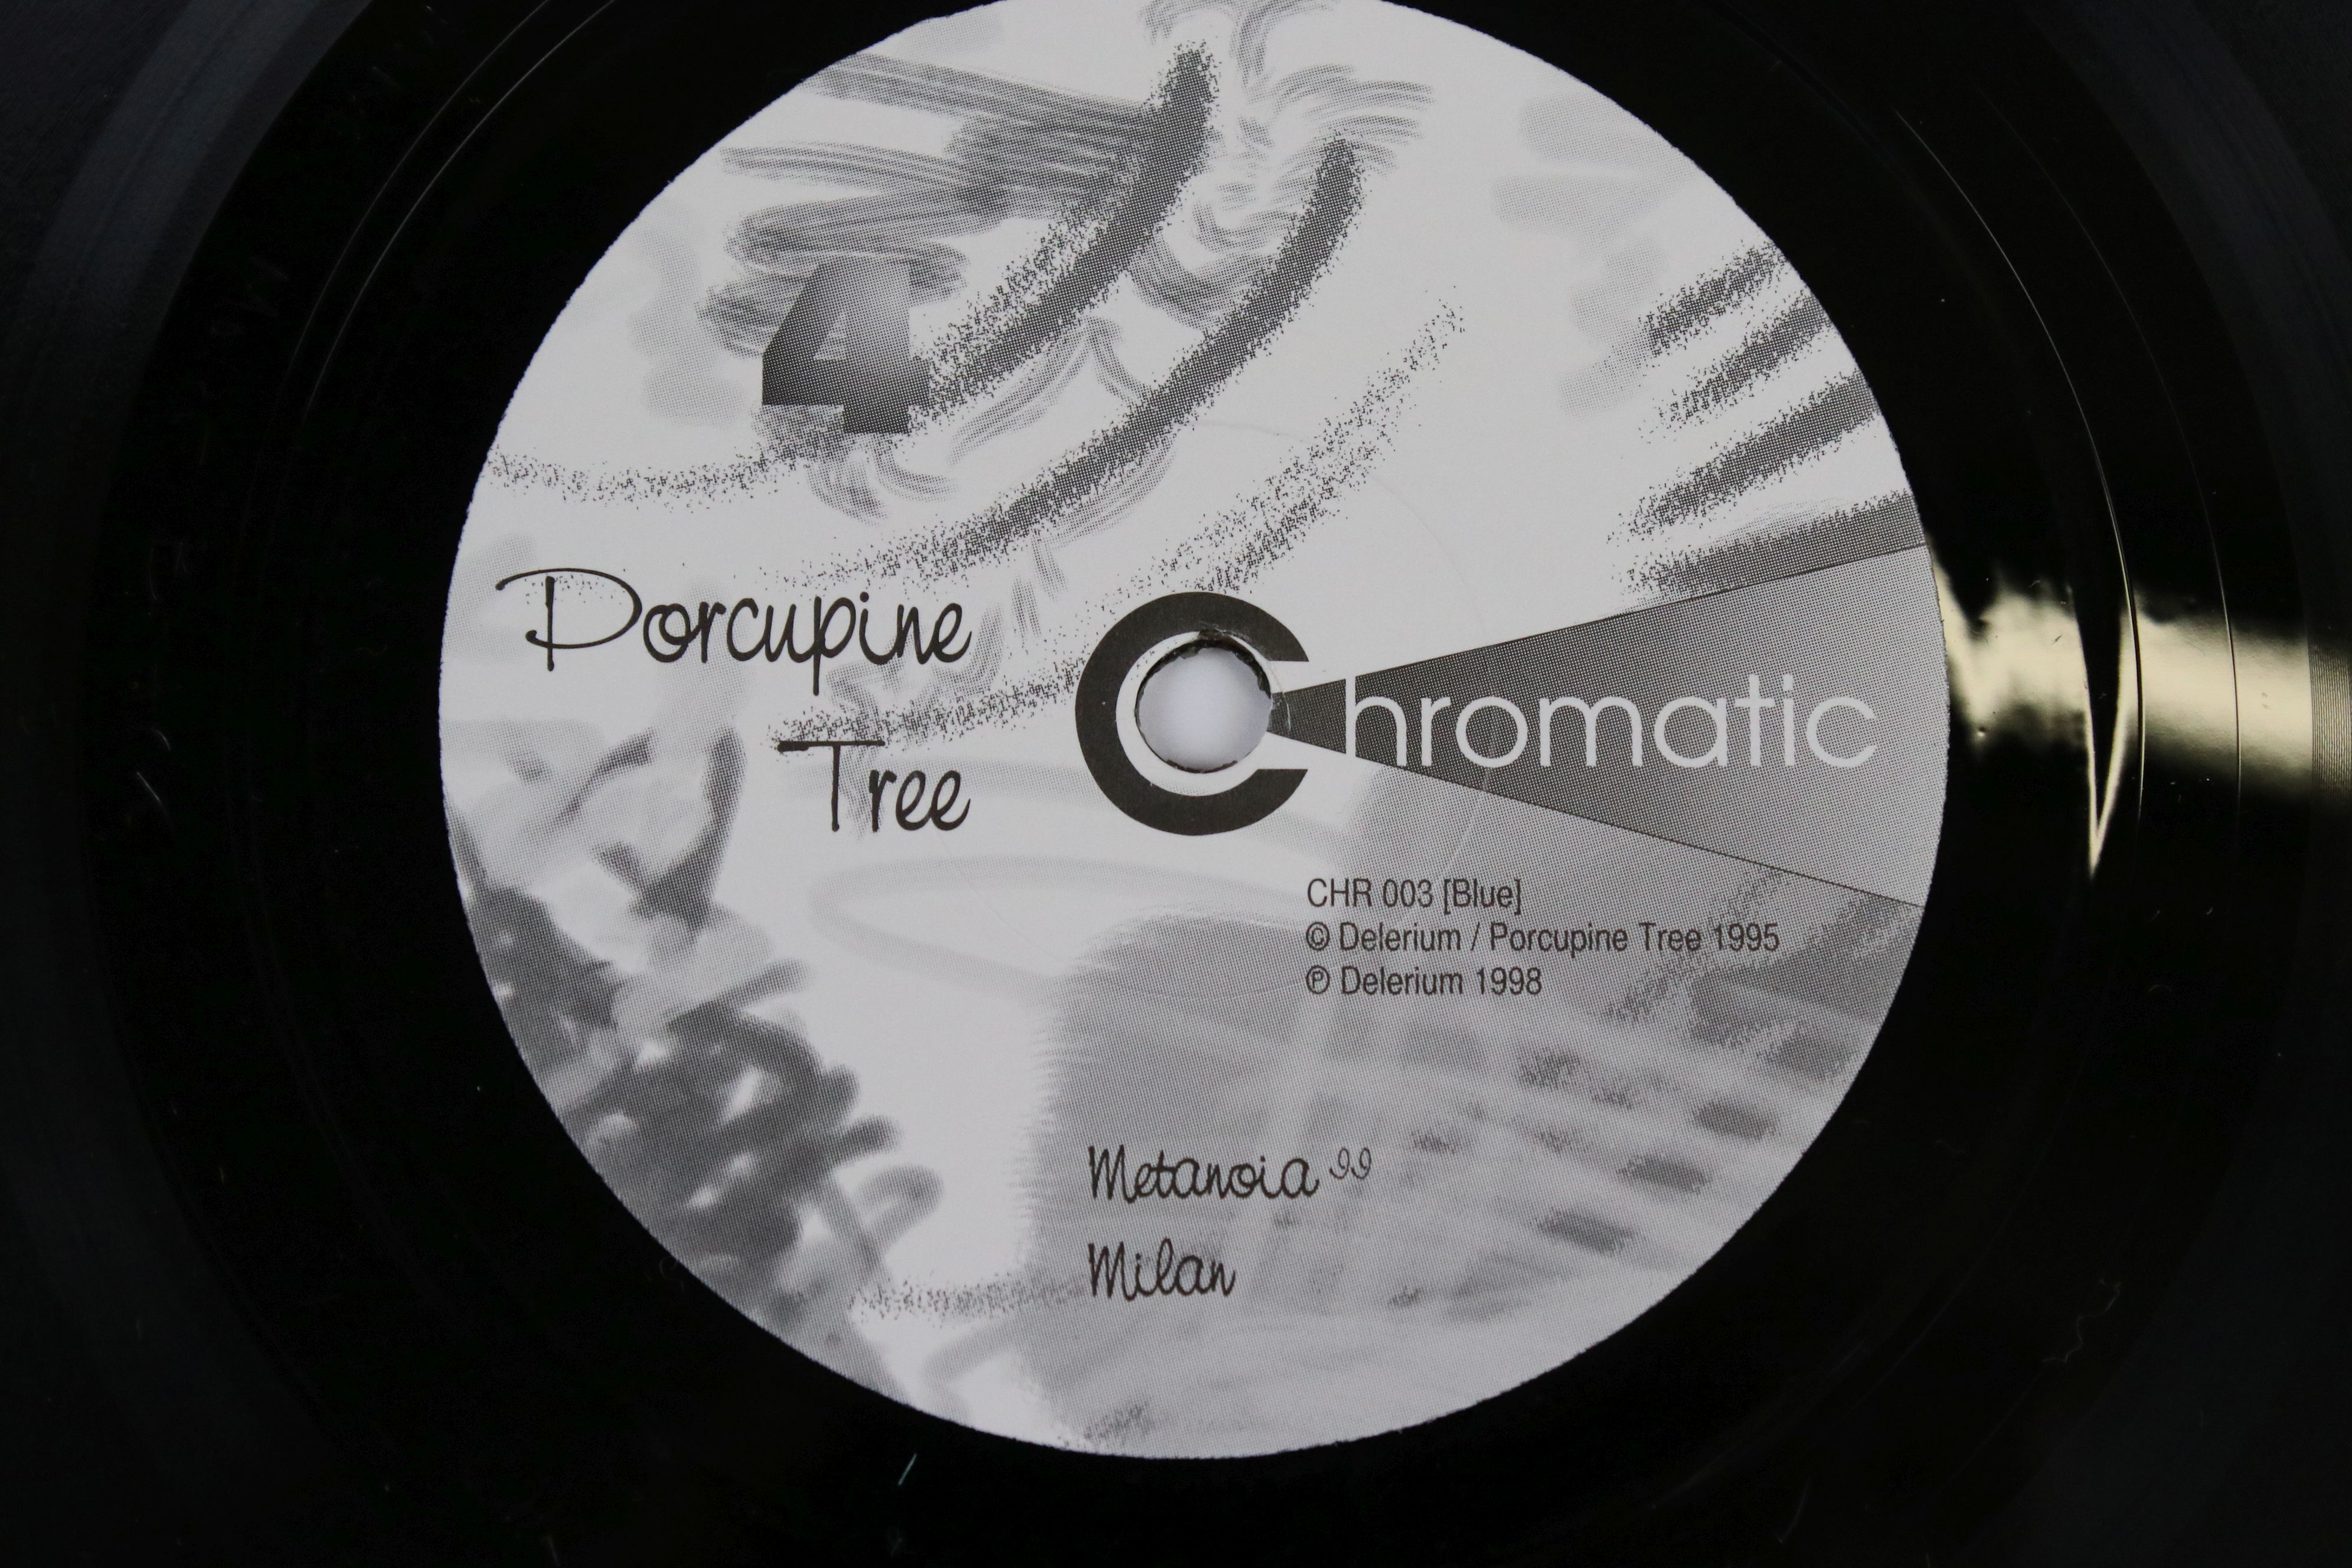 """Vinyl - Porcupine Tree, Metanoia, limited edition 10"""" double LP, Chromatic CHR 003, in original - Image 4 of 5"""